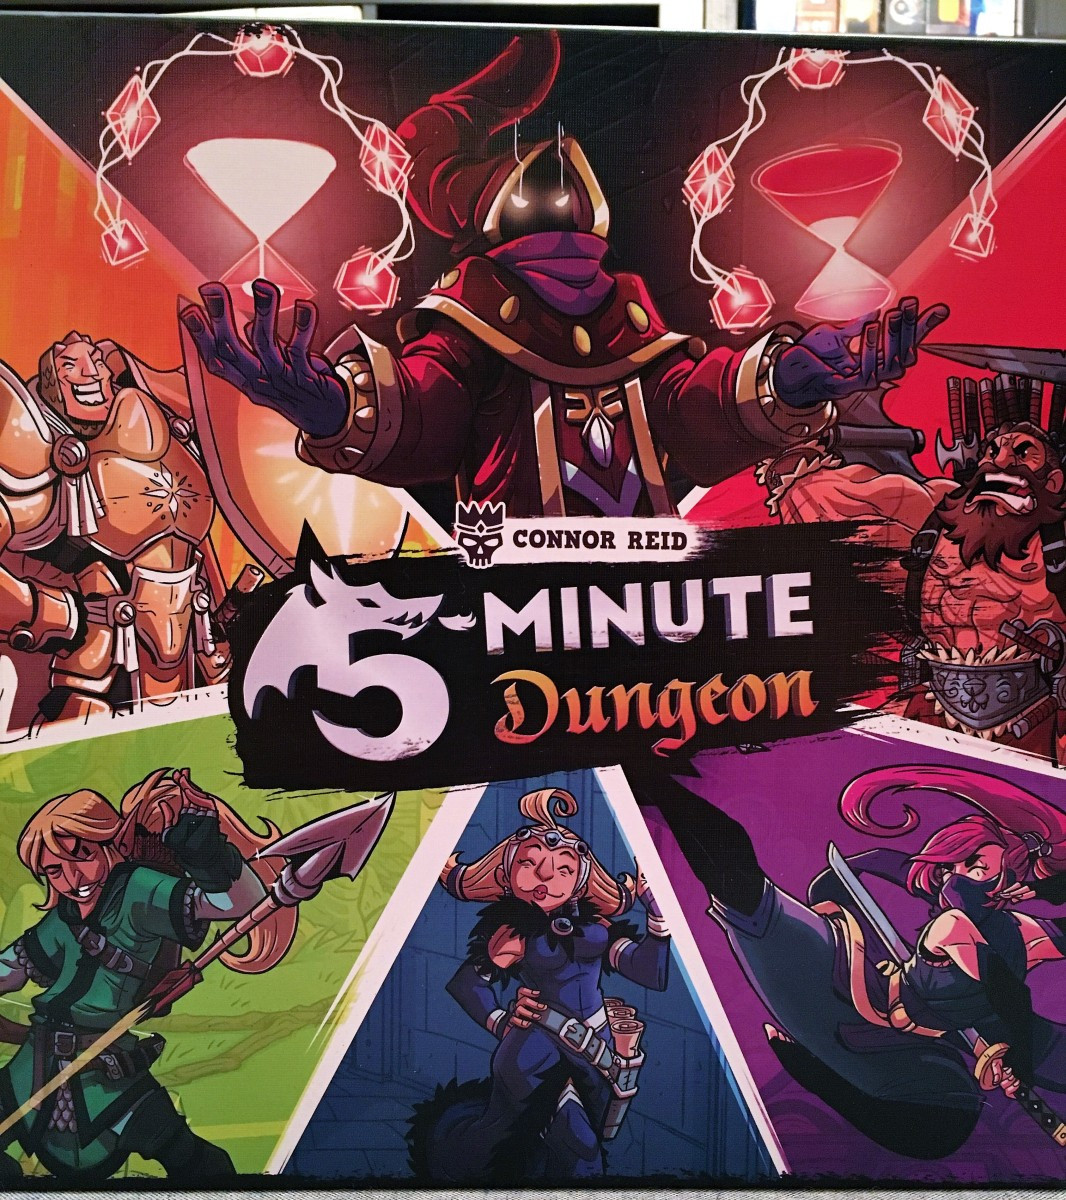 Game Review - 5 Minute Dungeon